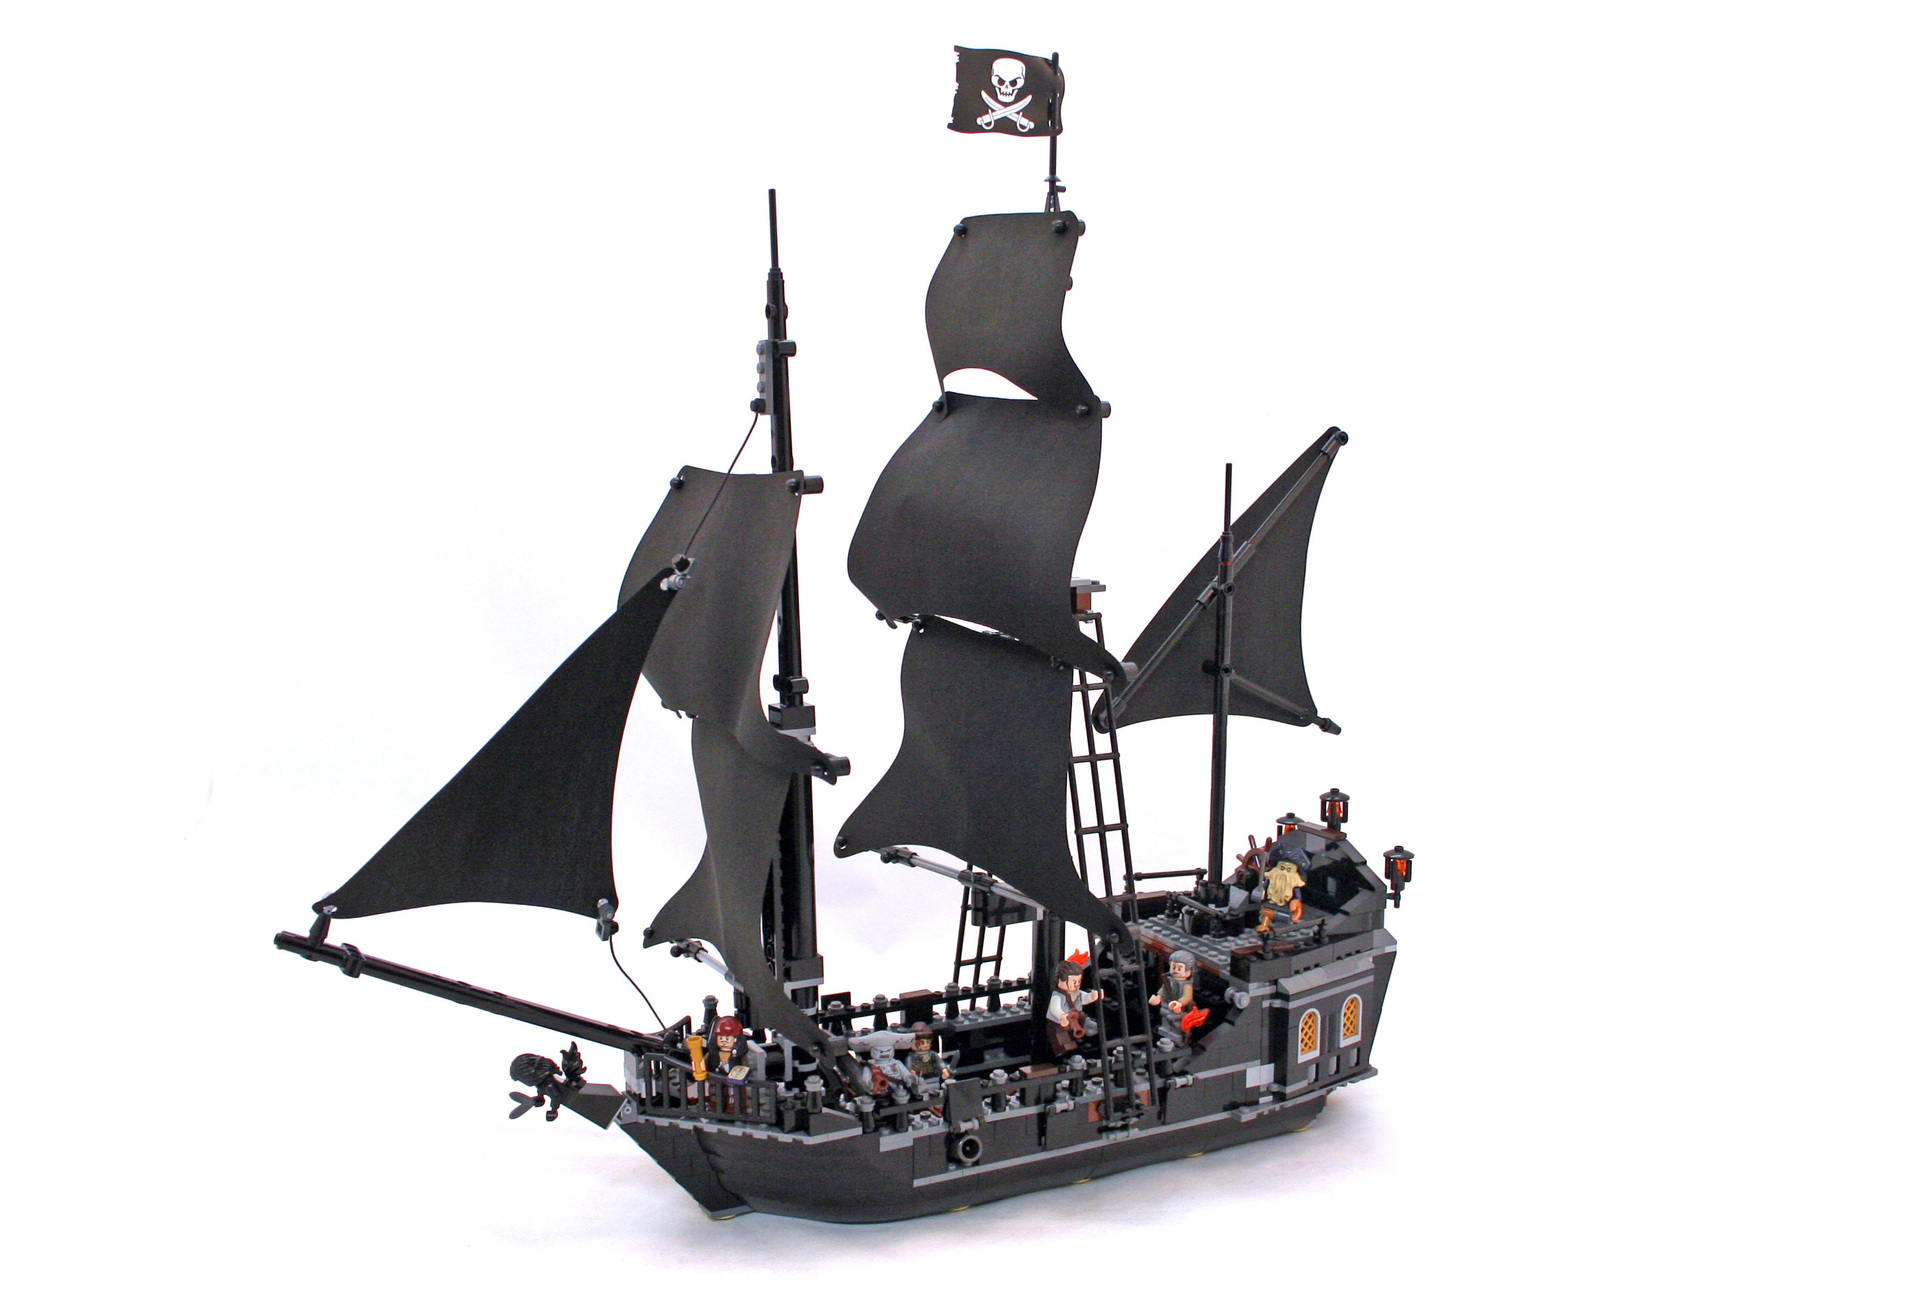 lego pirates of the caribbean sets instructions